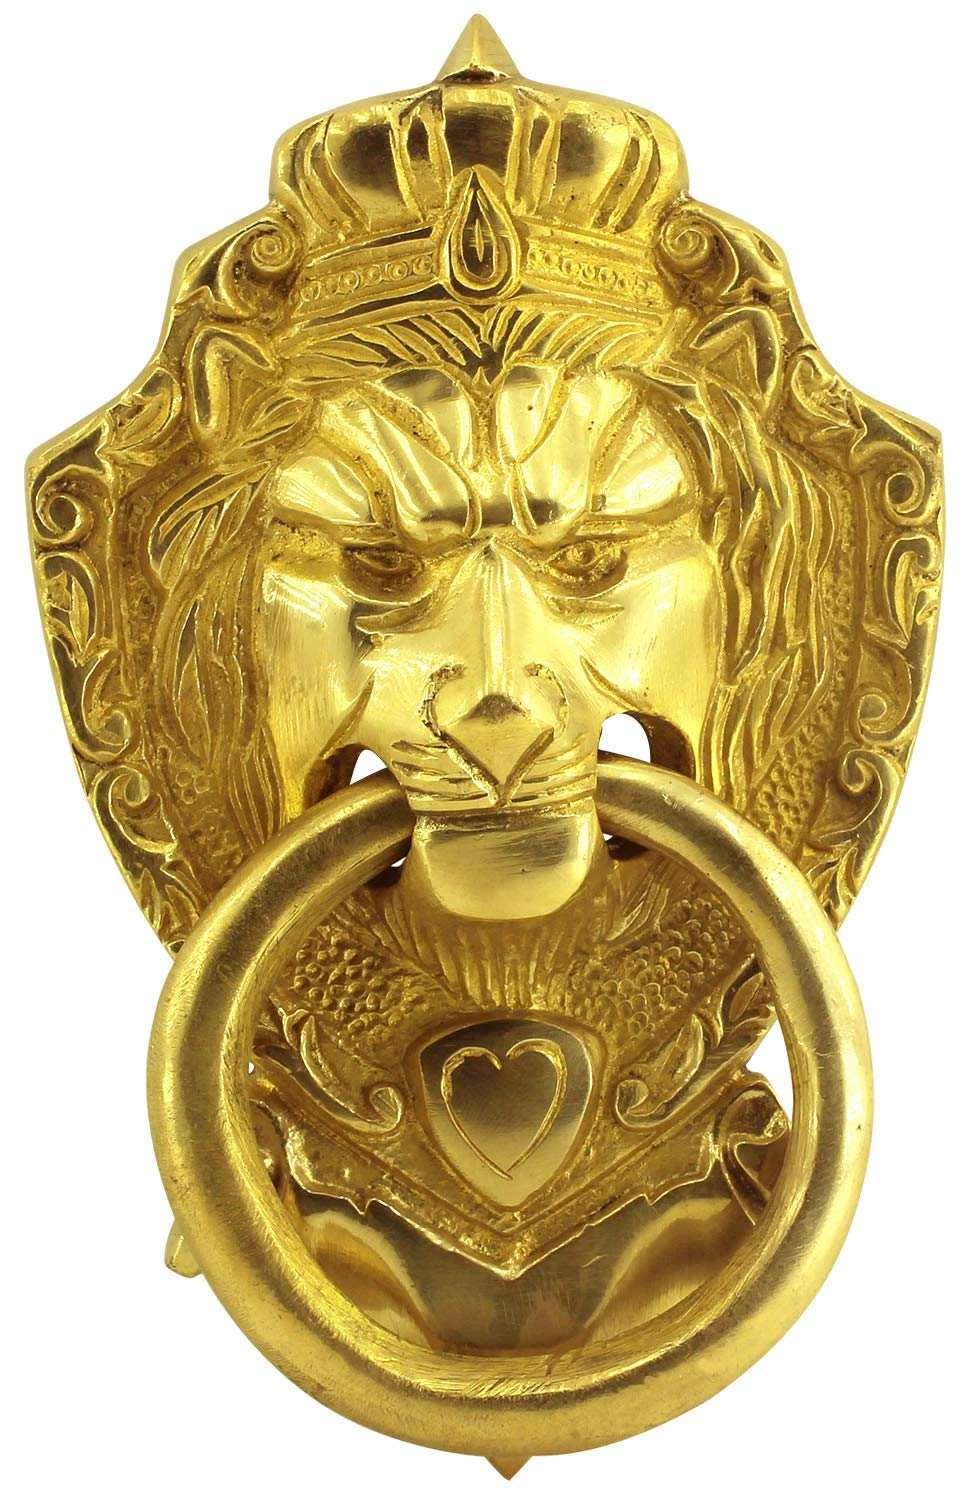 Today Sale on Crafkart King Lion Face Design Brass Door Knocker for Front Door | Vintage Style Pull Door Ring Handleset | Polished Brass by Crafkart (Image #1)